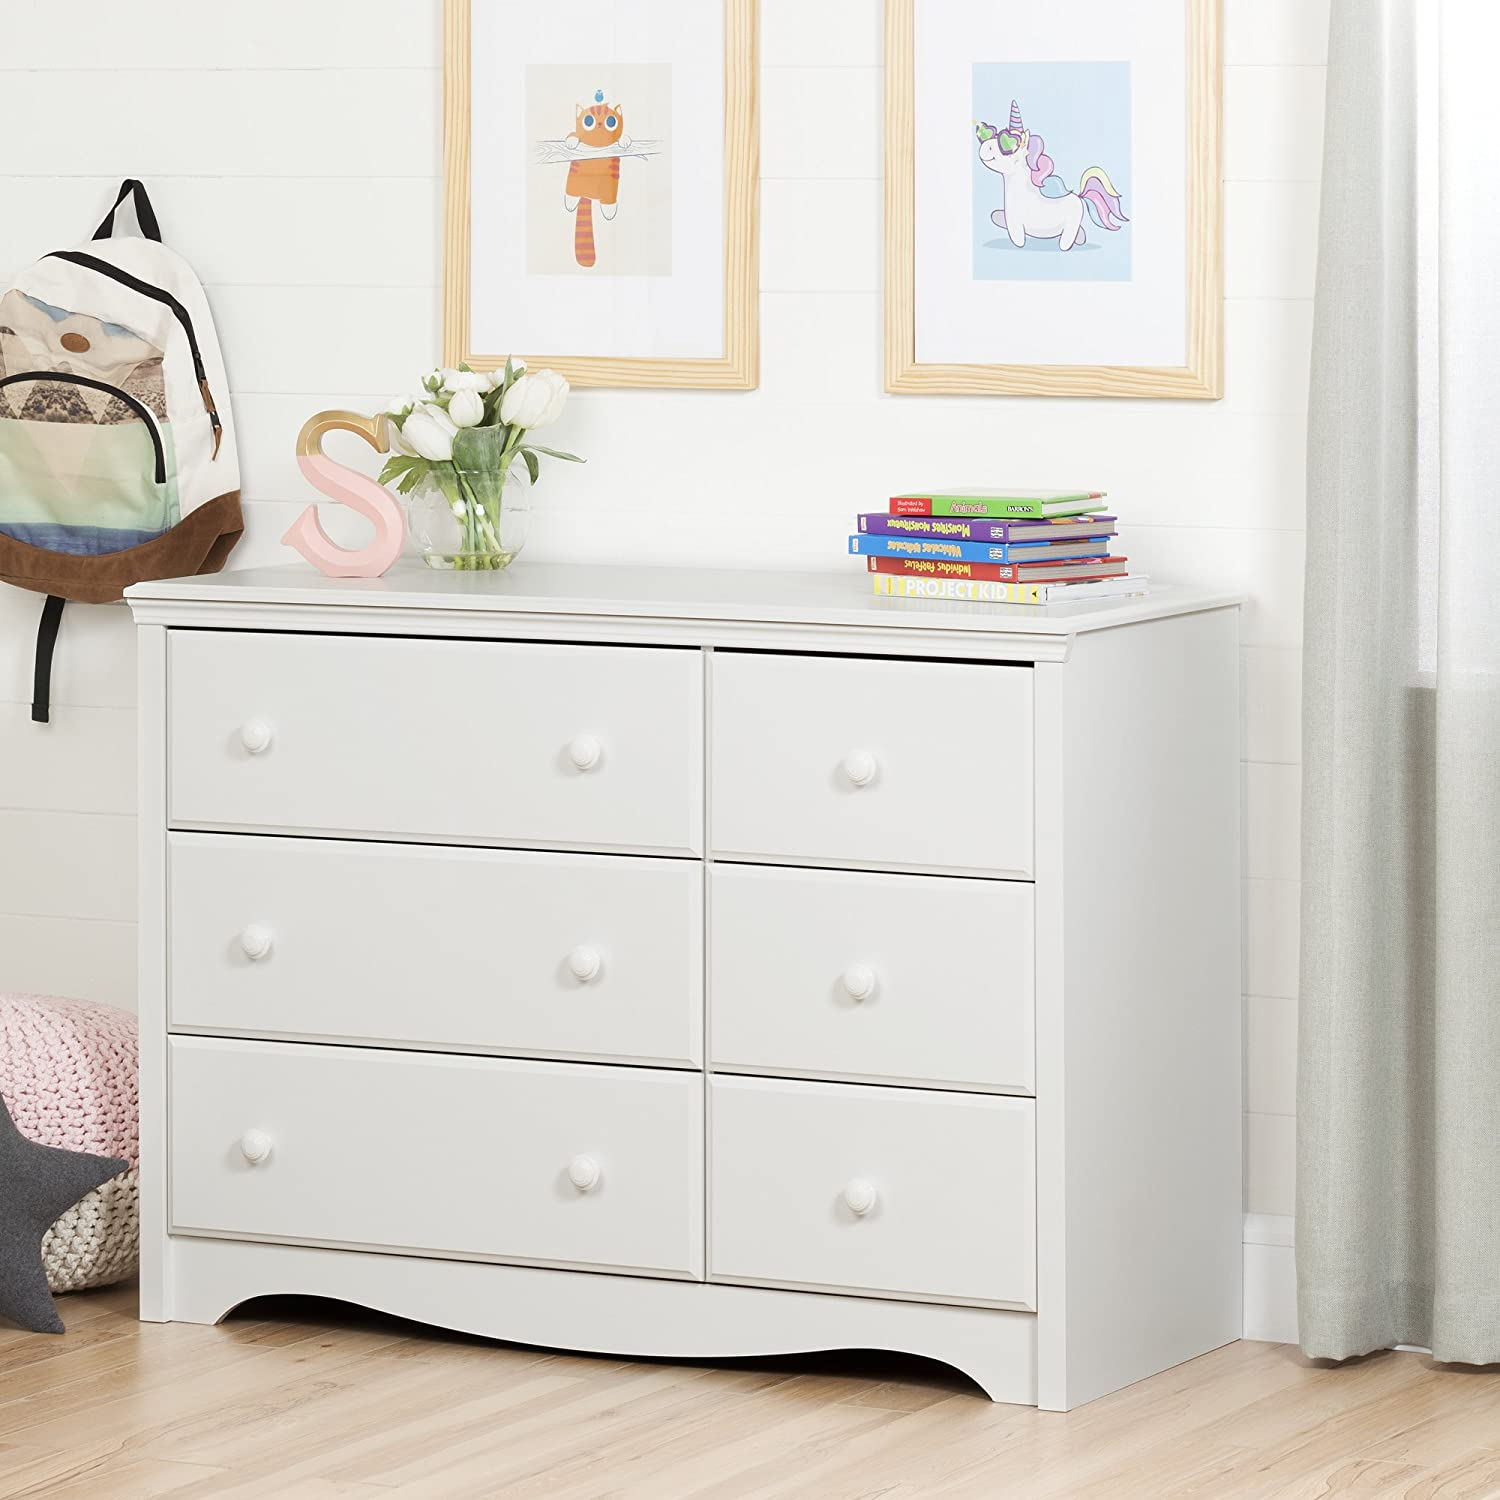 amazoncom south shore furniture angel changing table with 6 drawers pure white baby